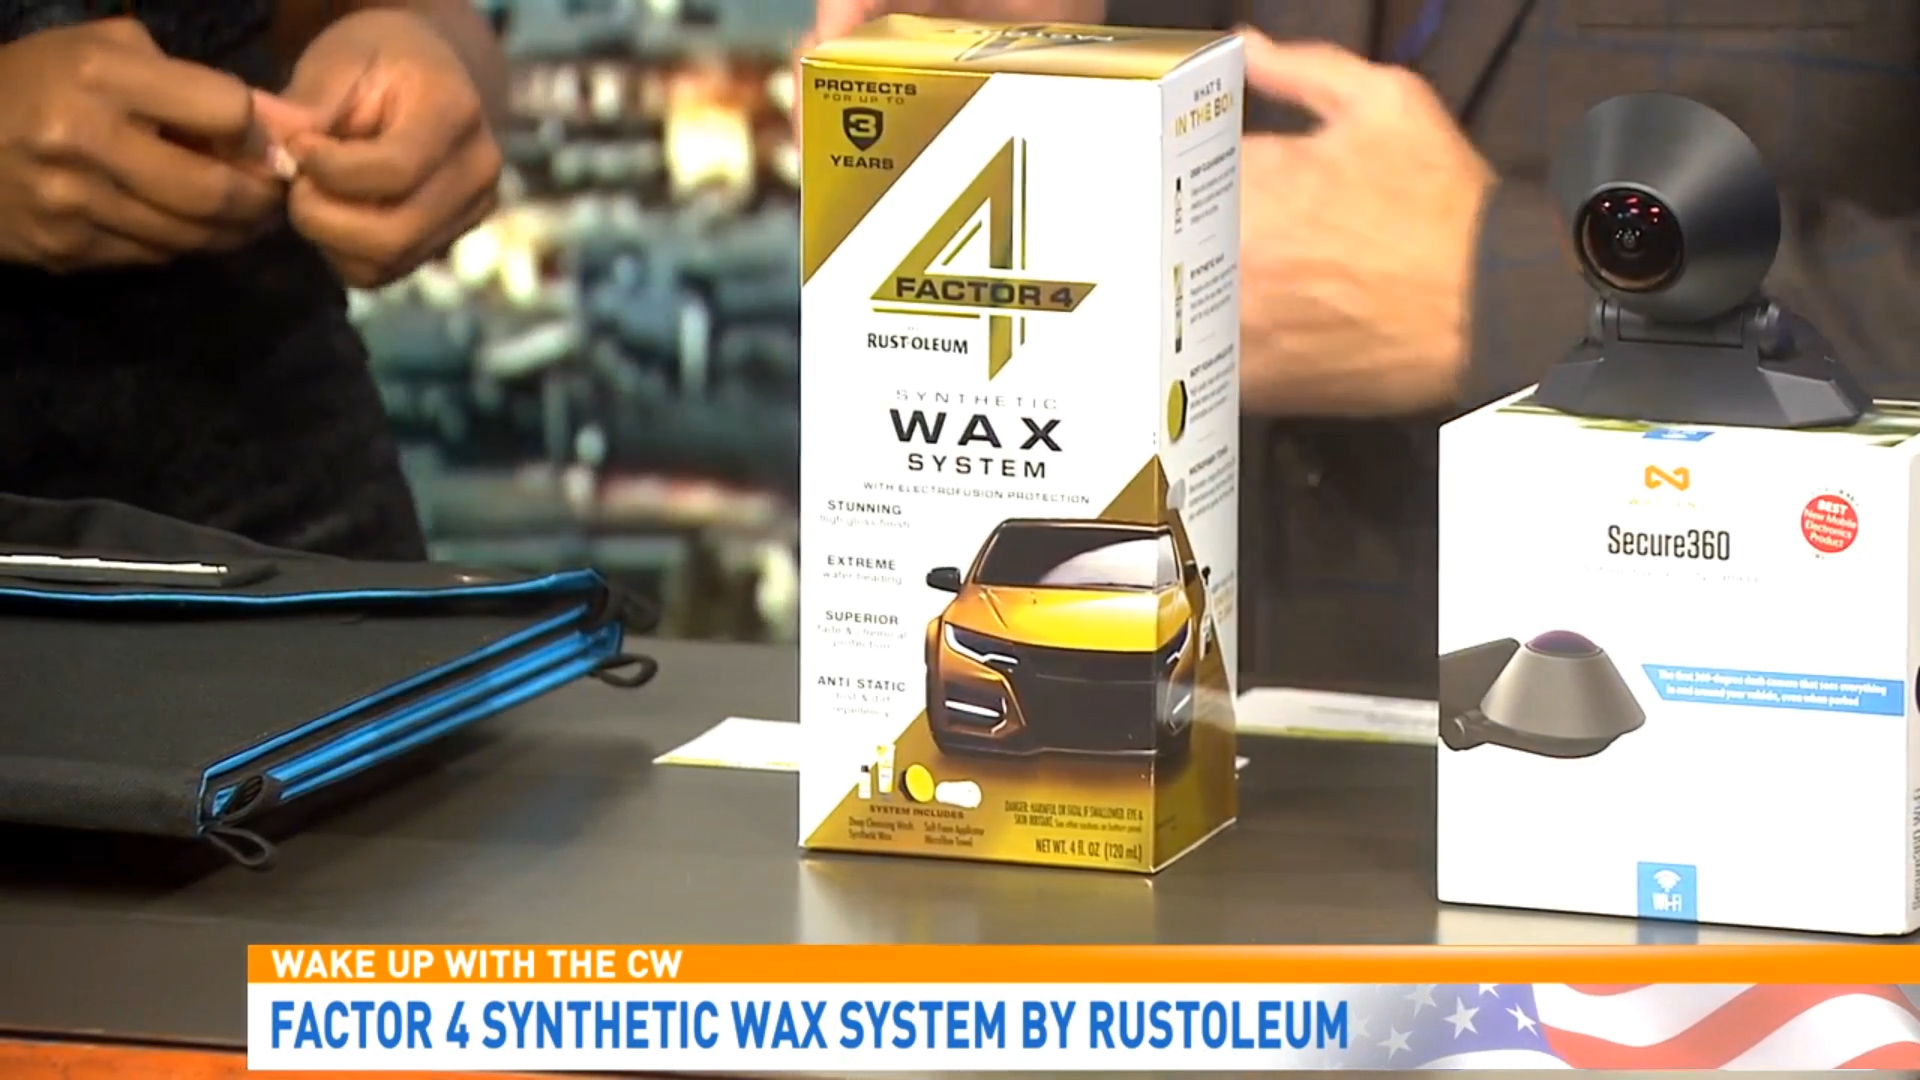 FACTOR 4 SYNTHETIC WAX SYSTEM BY RUSTOLEUM - $21.99Shop Now